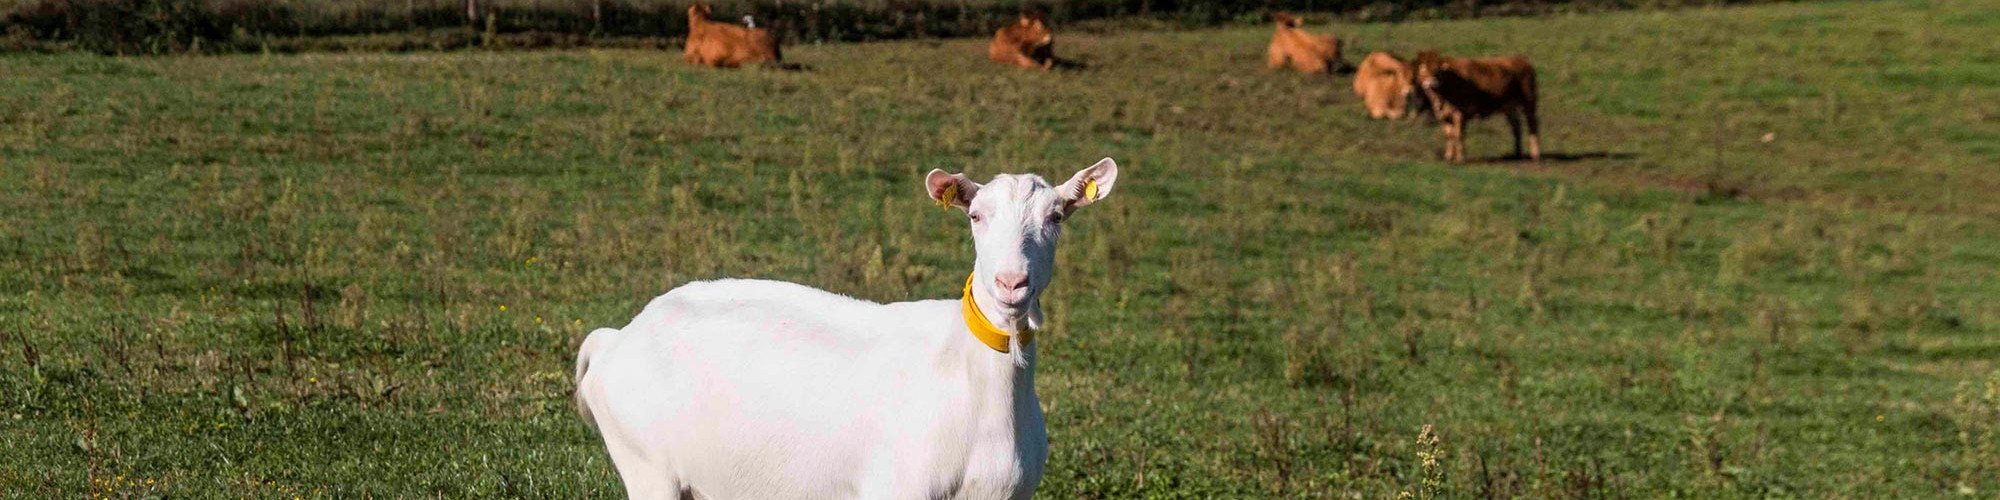 image-product-cows-goat-2000x500